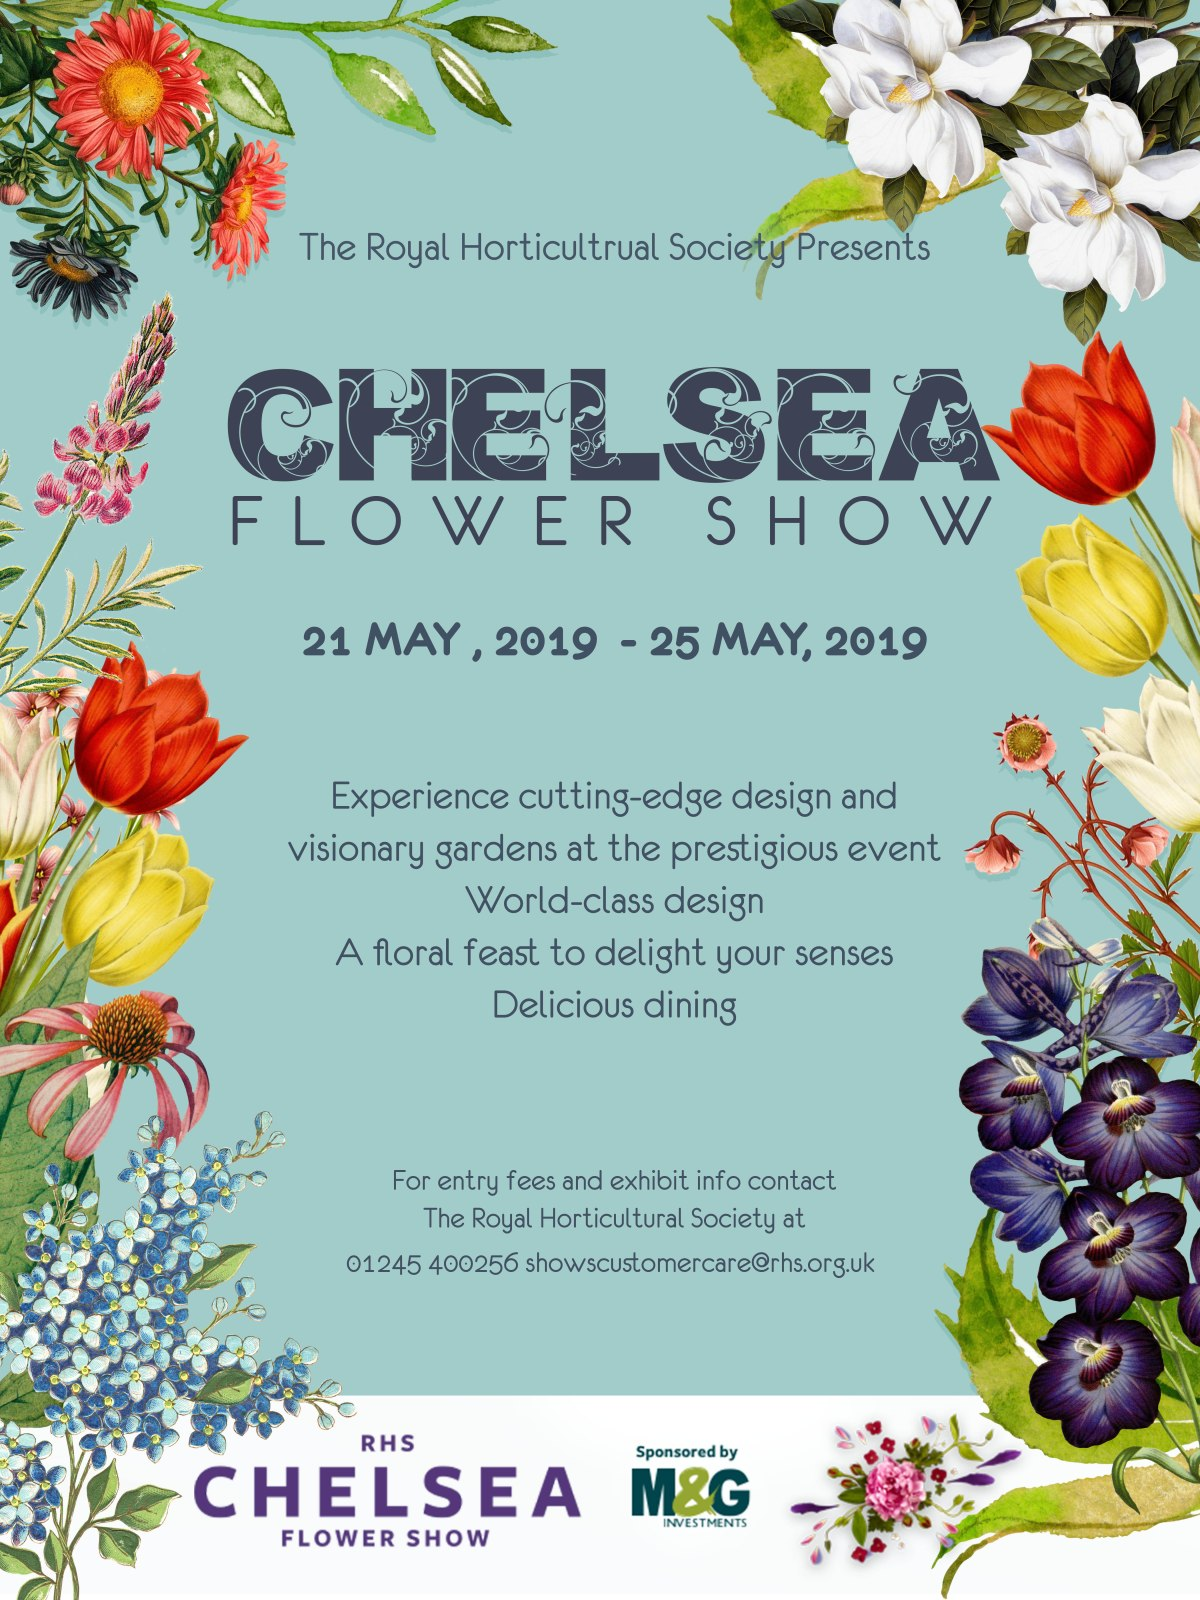 RHS Chelsea Flower Show poster